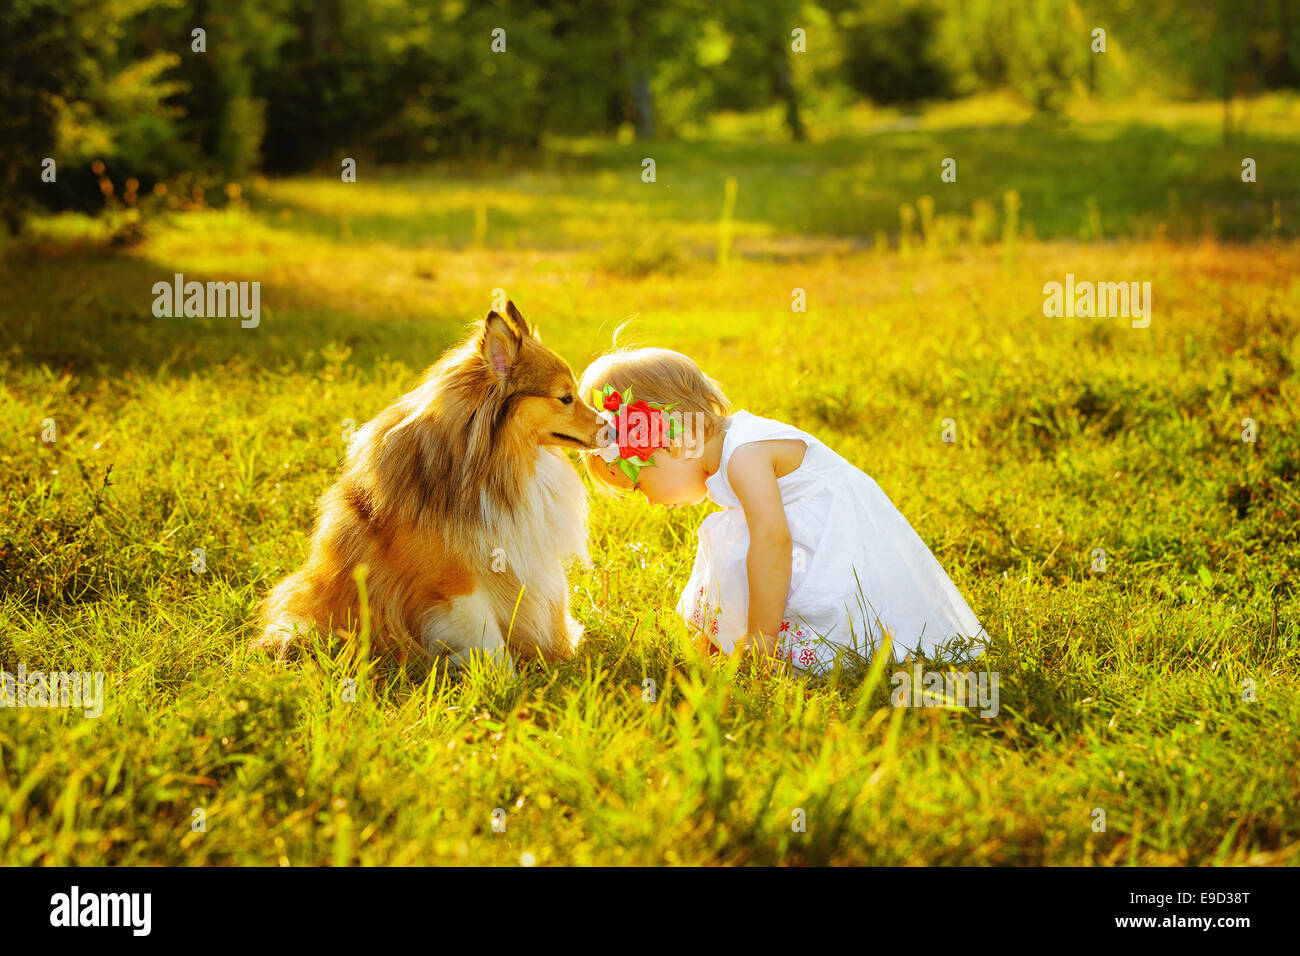 Little girl and dog - Stock Image